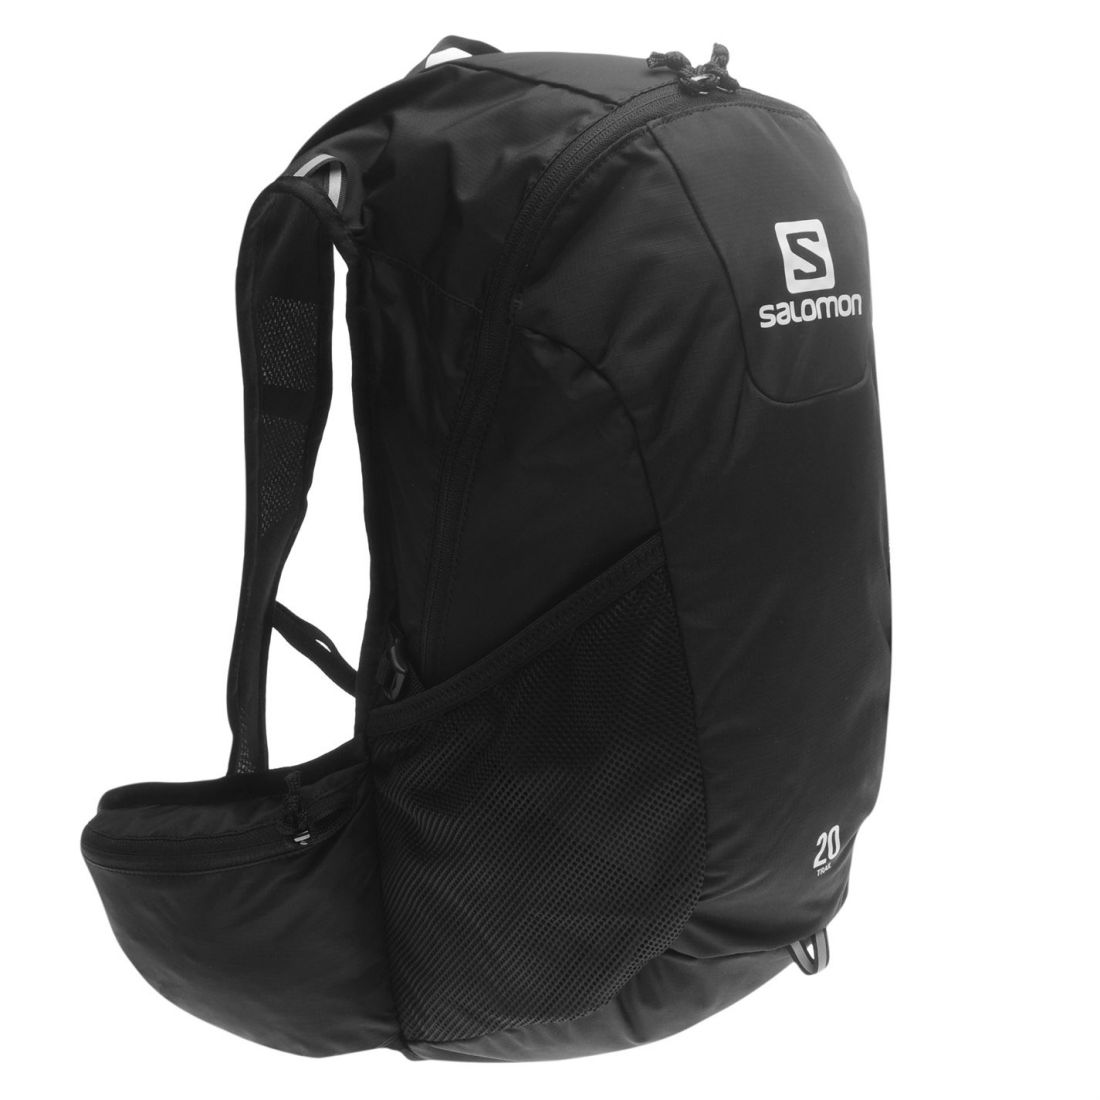 meilleur service d18f2 2013c Details about Salomon Trail 20 Backpack Back Pack Unisex